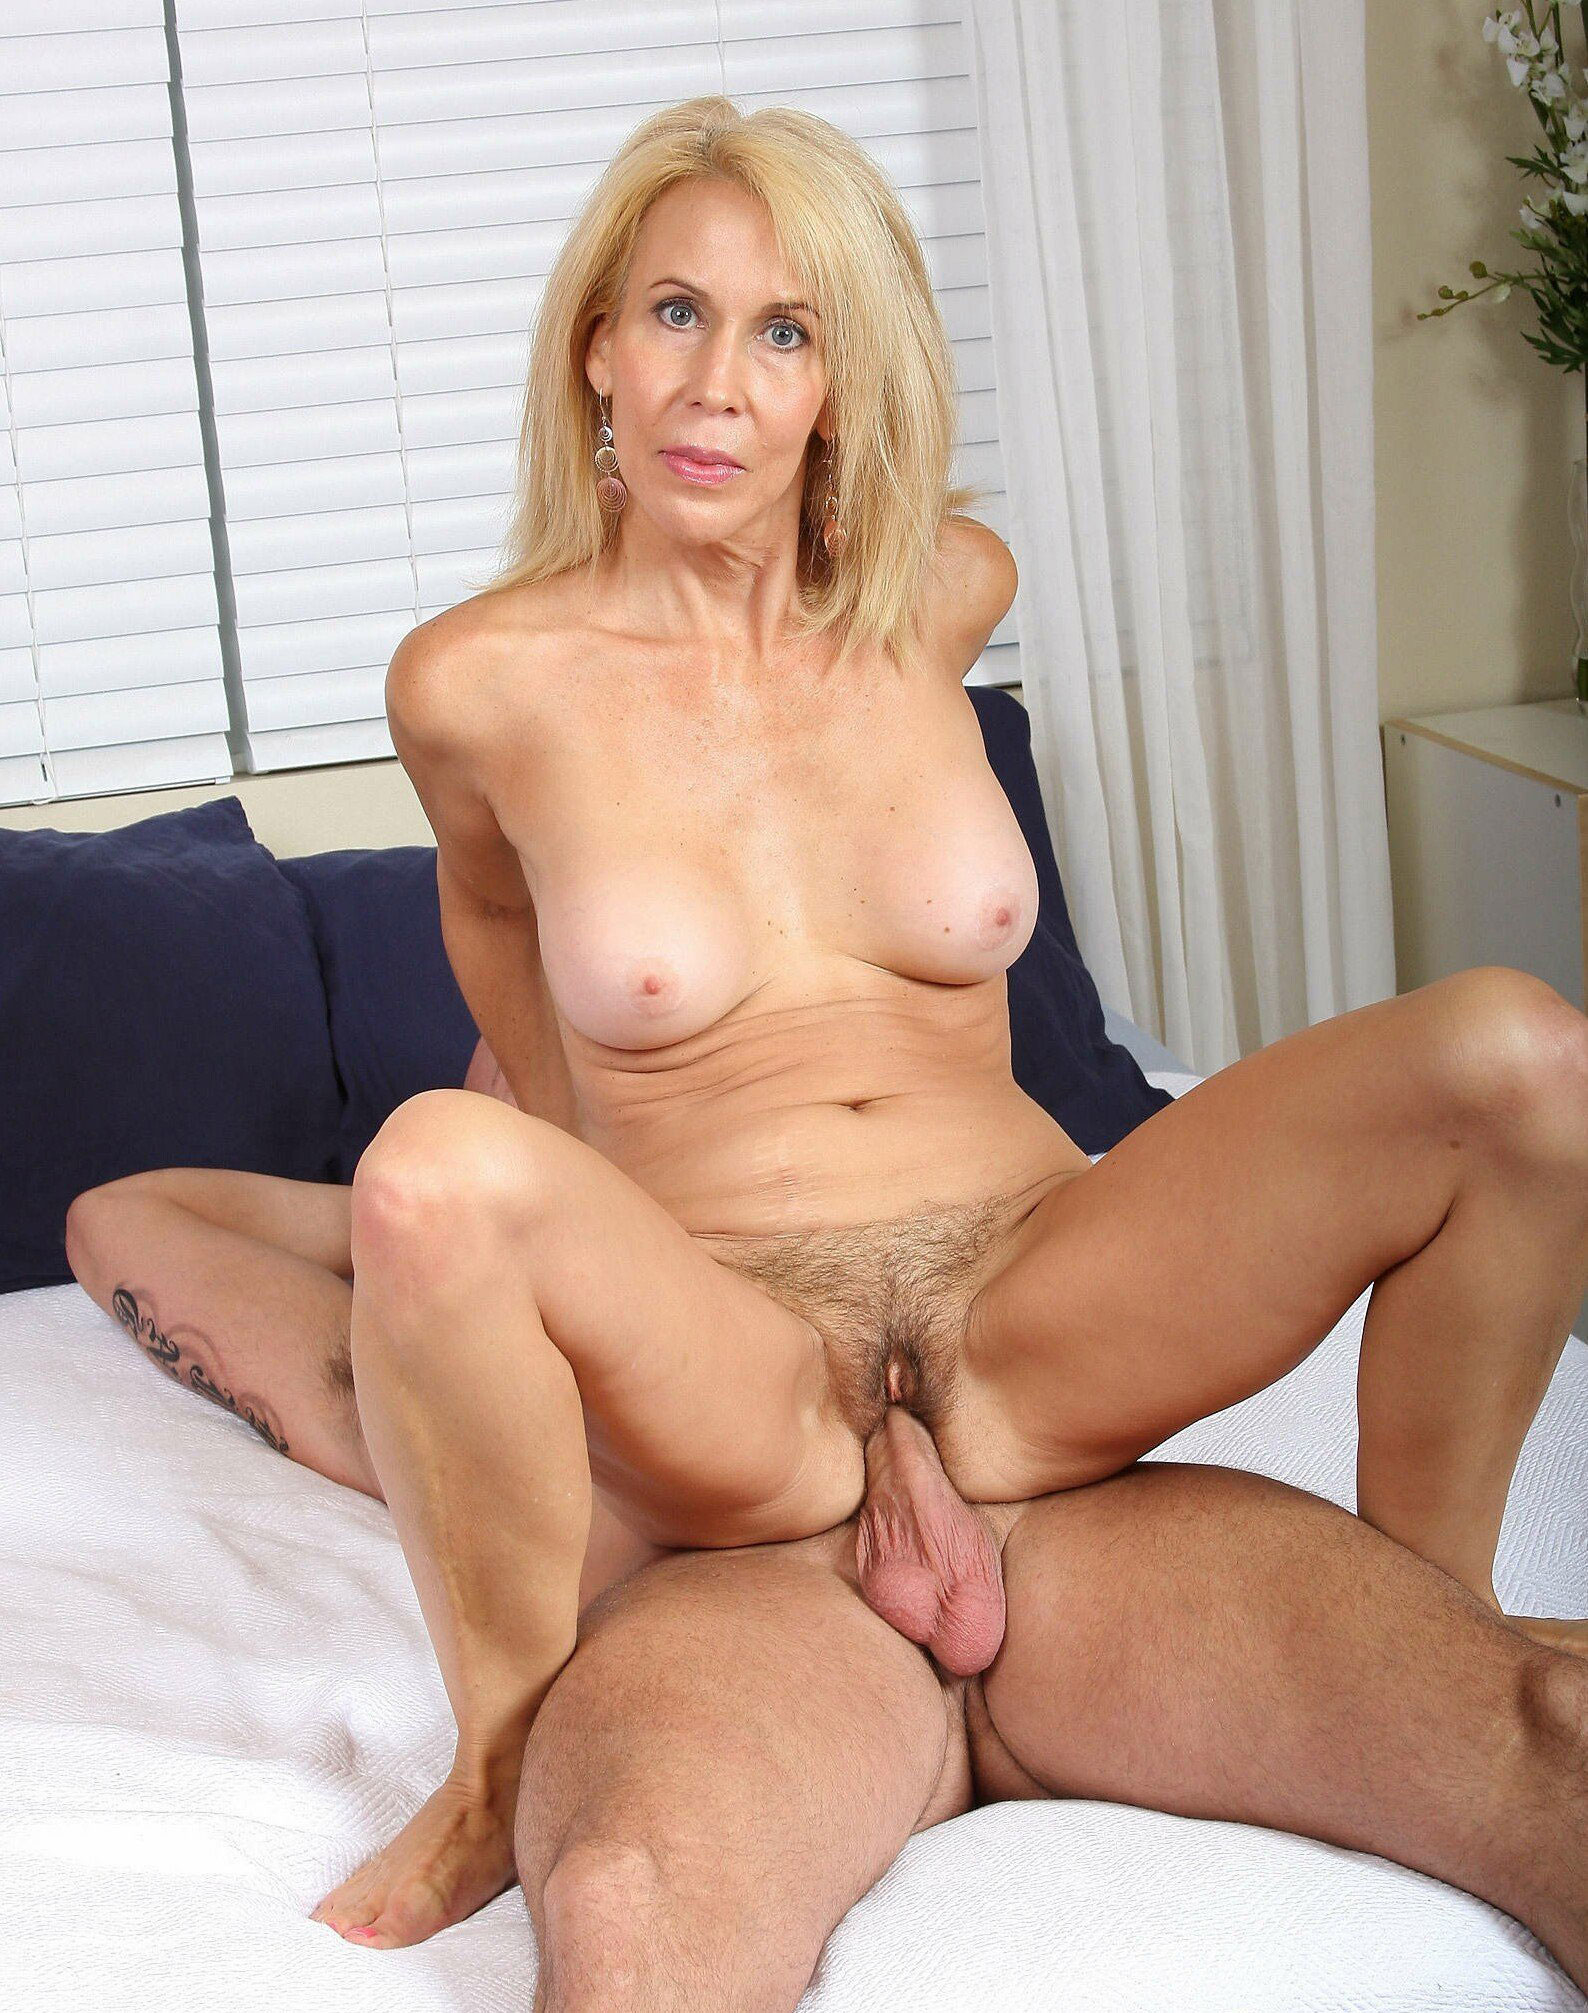 All Granny Porn maturenudism collection of free outdoor mature porn!